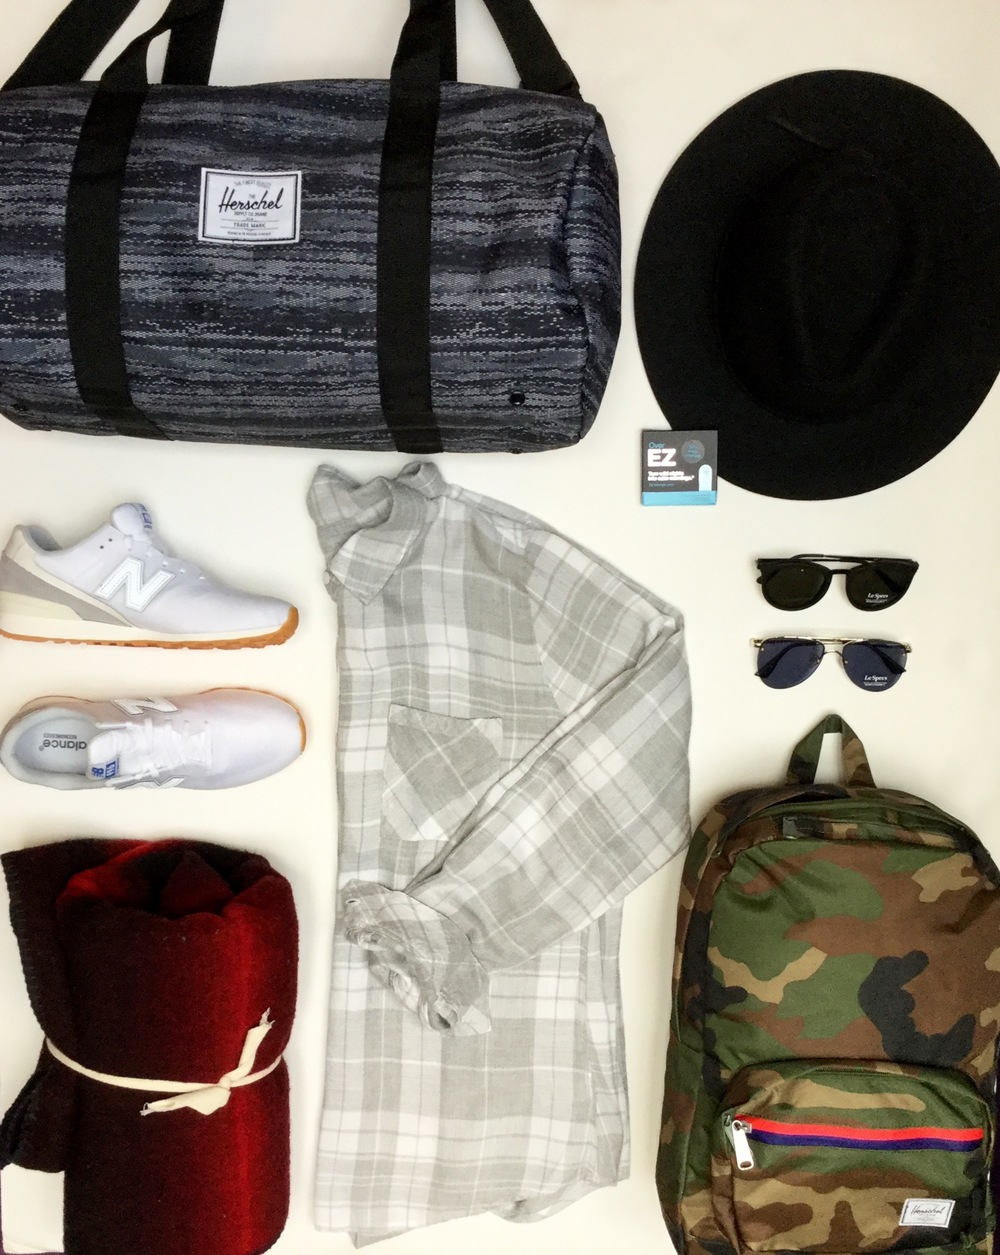 Herschel Sutton Bag $65 | Brixton Hat $80 | New Balance Retro Runners $130 | Le Specs Sunglasses $110 | Rails Plaid Shirt $215 | Woolrich Blanket $120 | Herschel Backpack $80